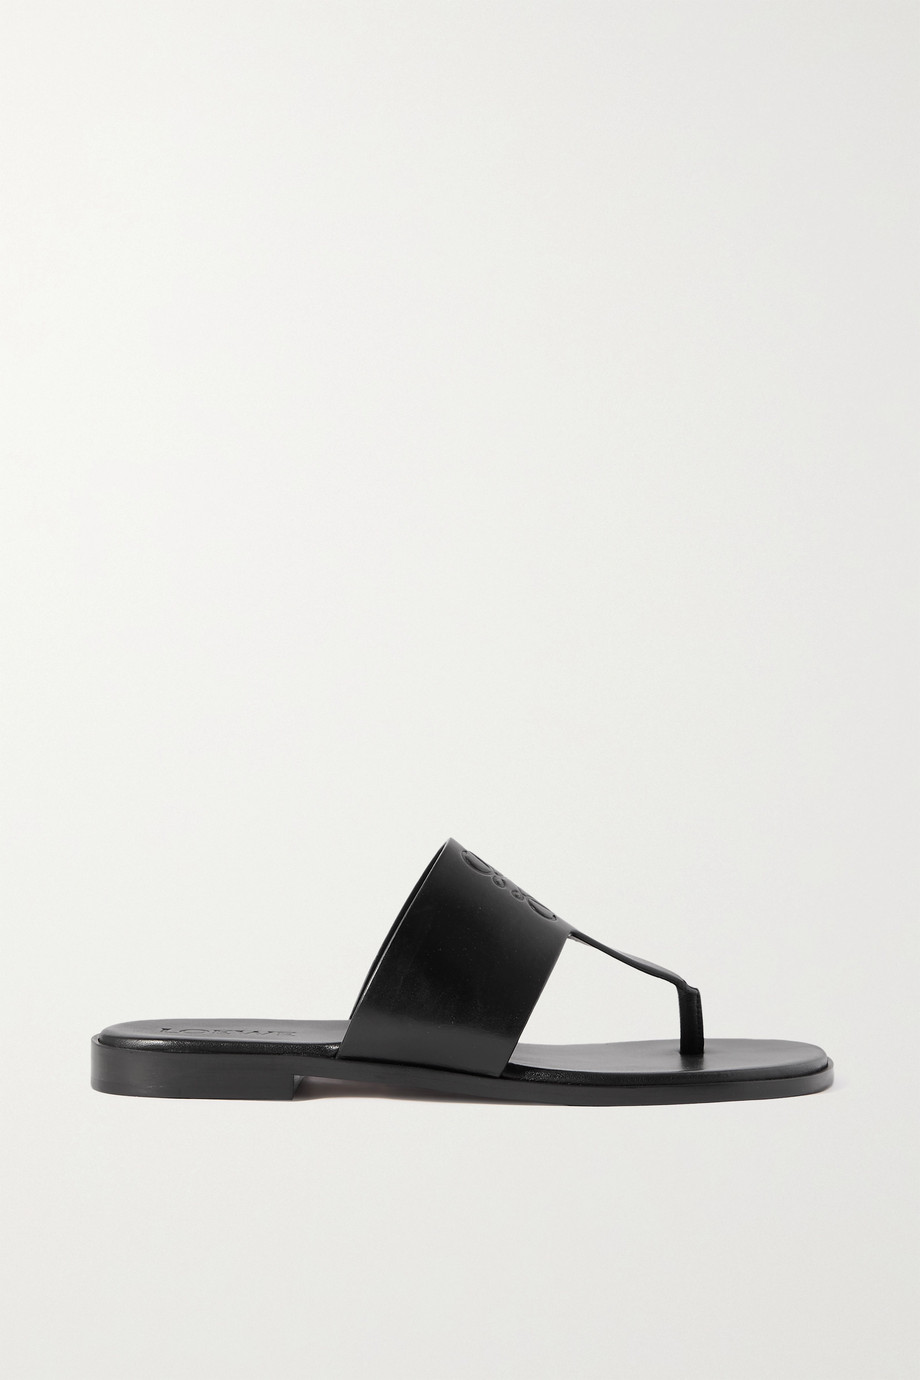 LOEWE + Paula's Ibiza logo-debossed leather sandals